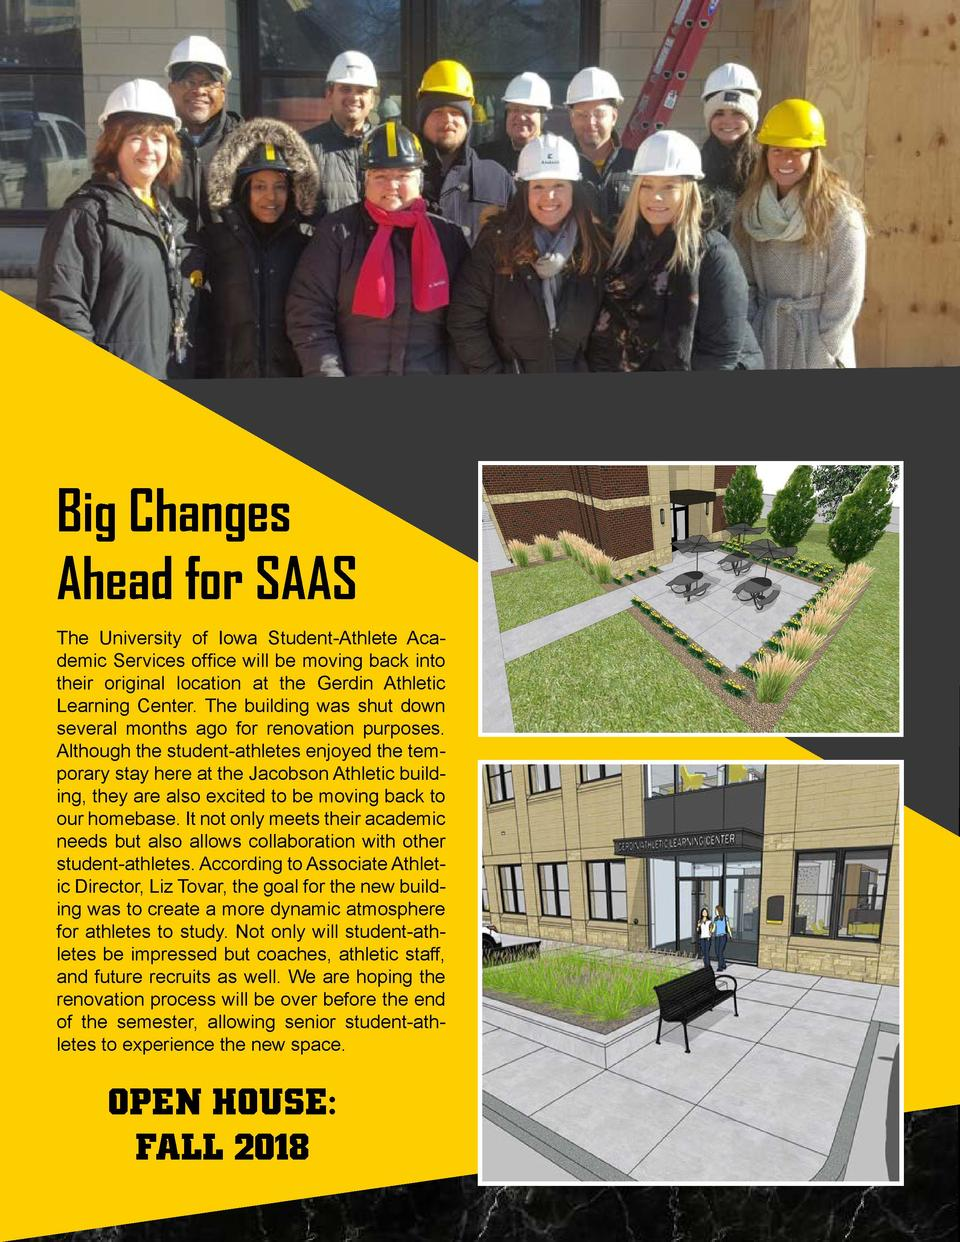 Big Changes Ahead for SAAS The University of Iowa Student-Athlete Academic Services office will be moving back into their ...